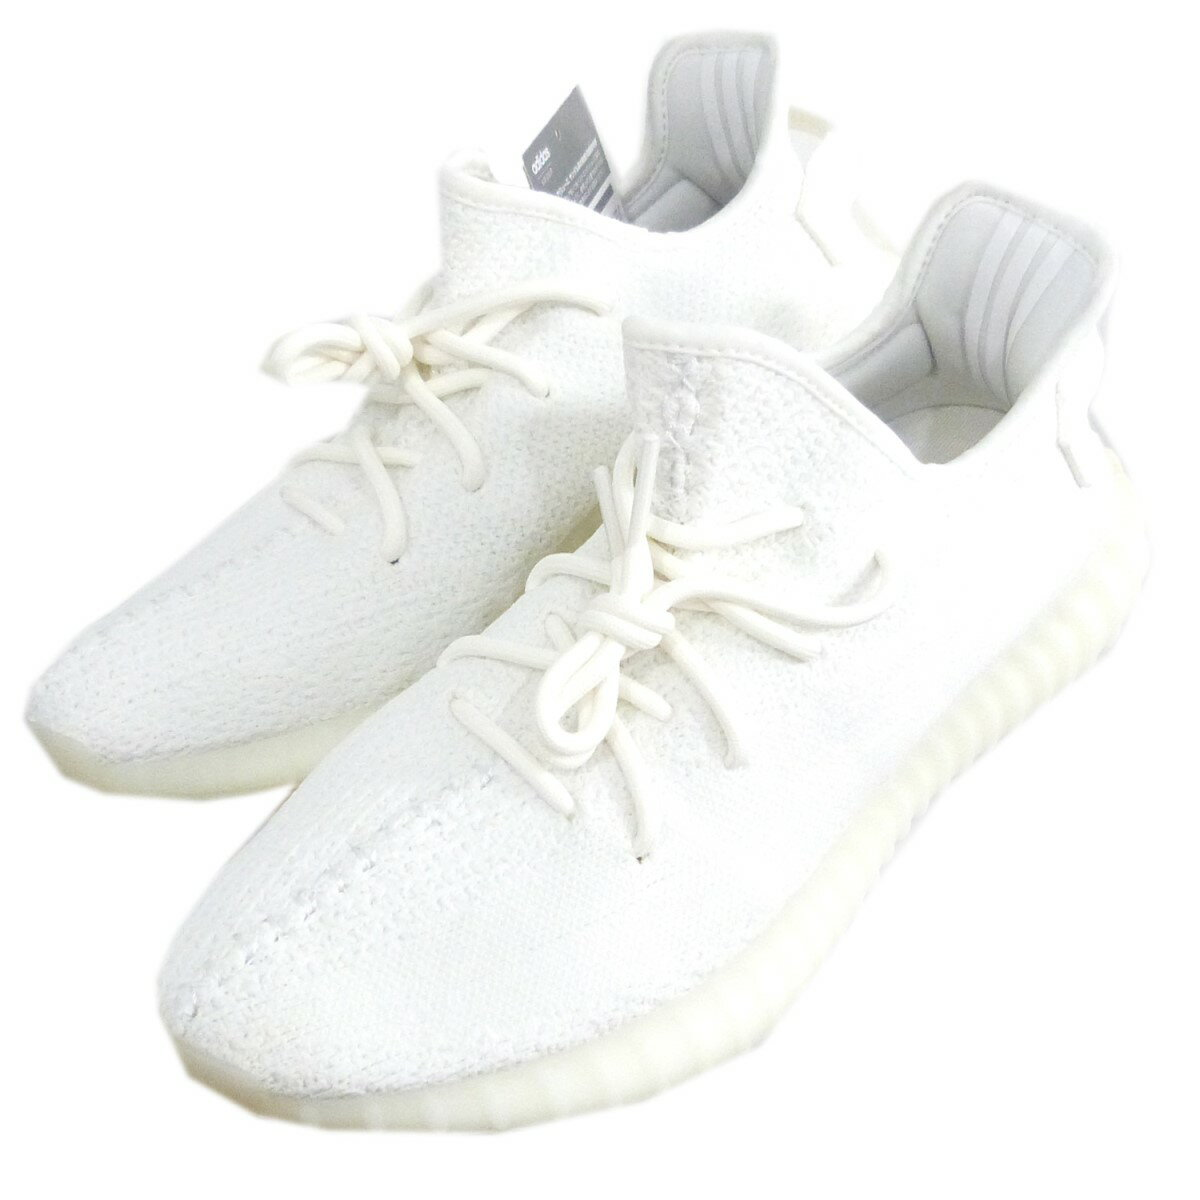 メンズ靴, スニーカー adidas originals by Kanye West YEEZY BOOST 350 V2 285cm 190720